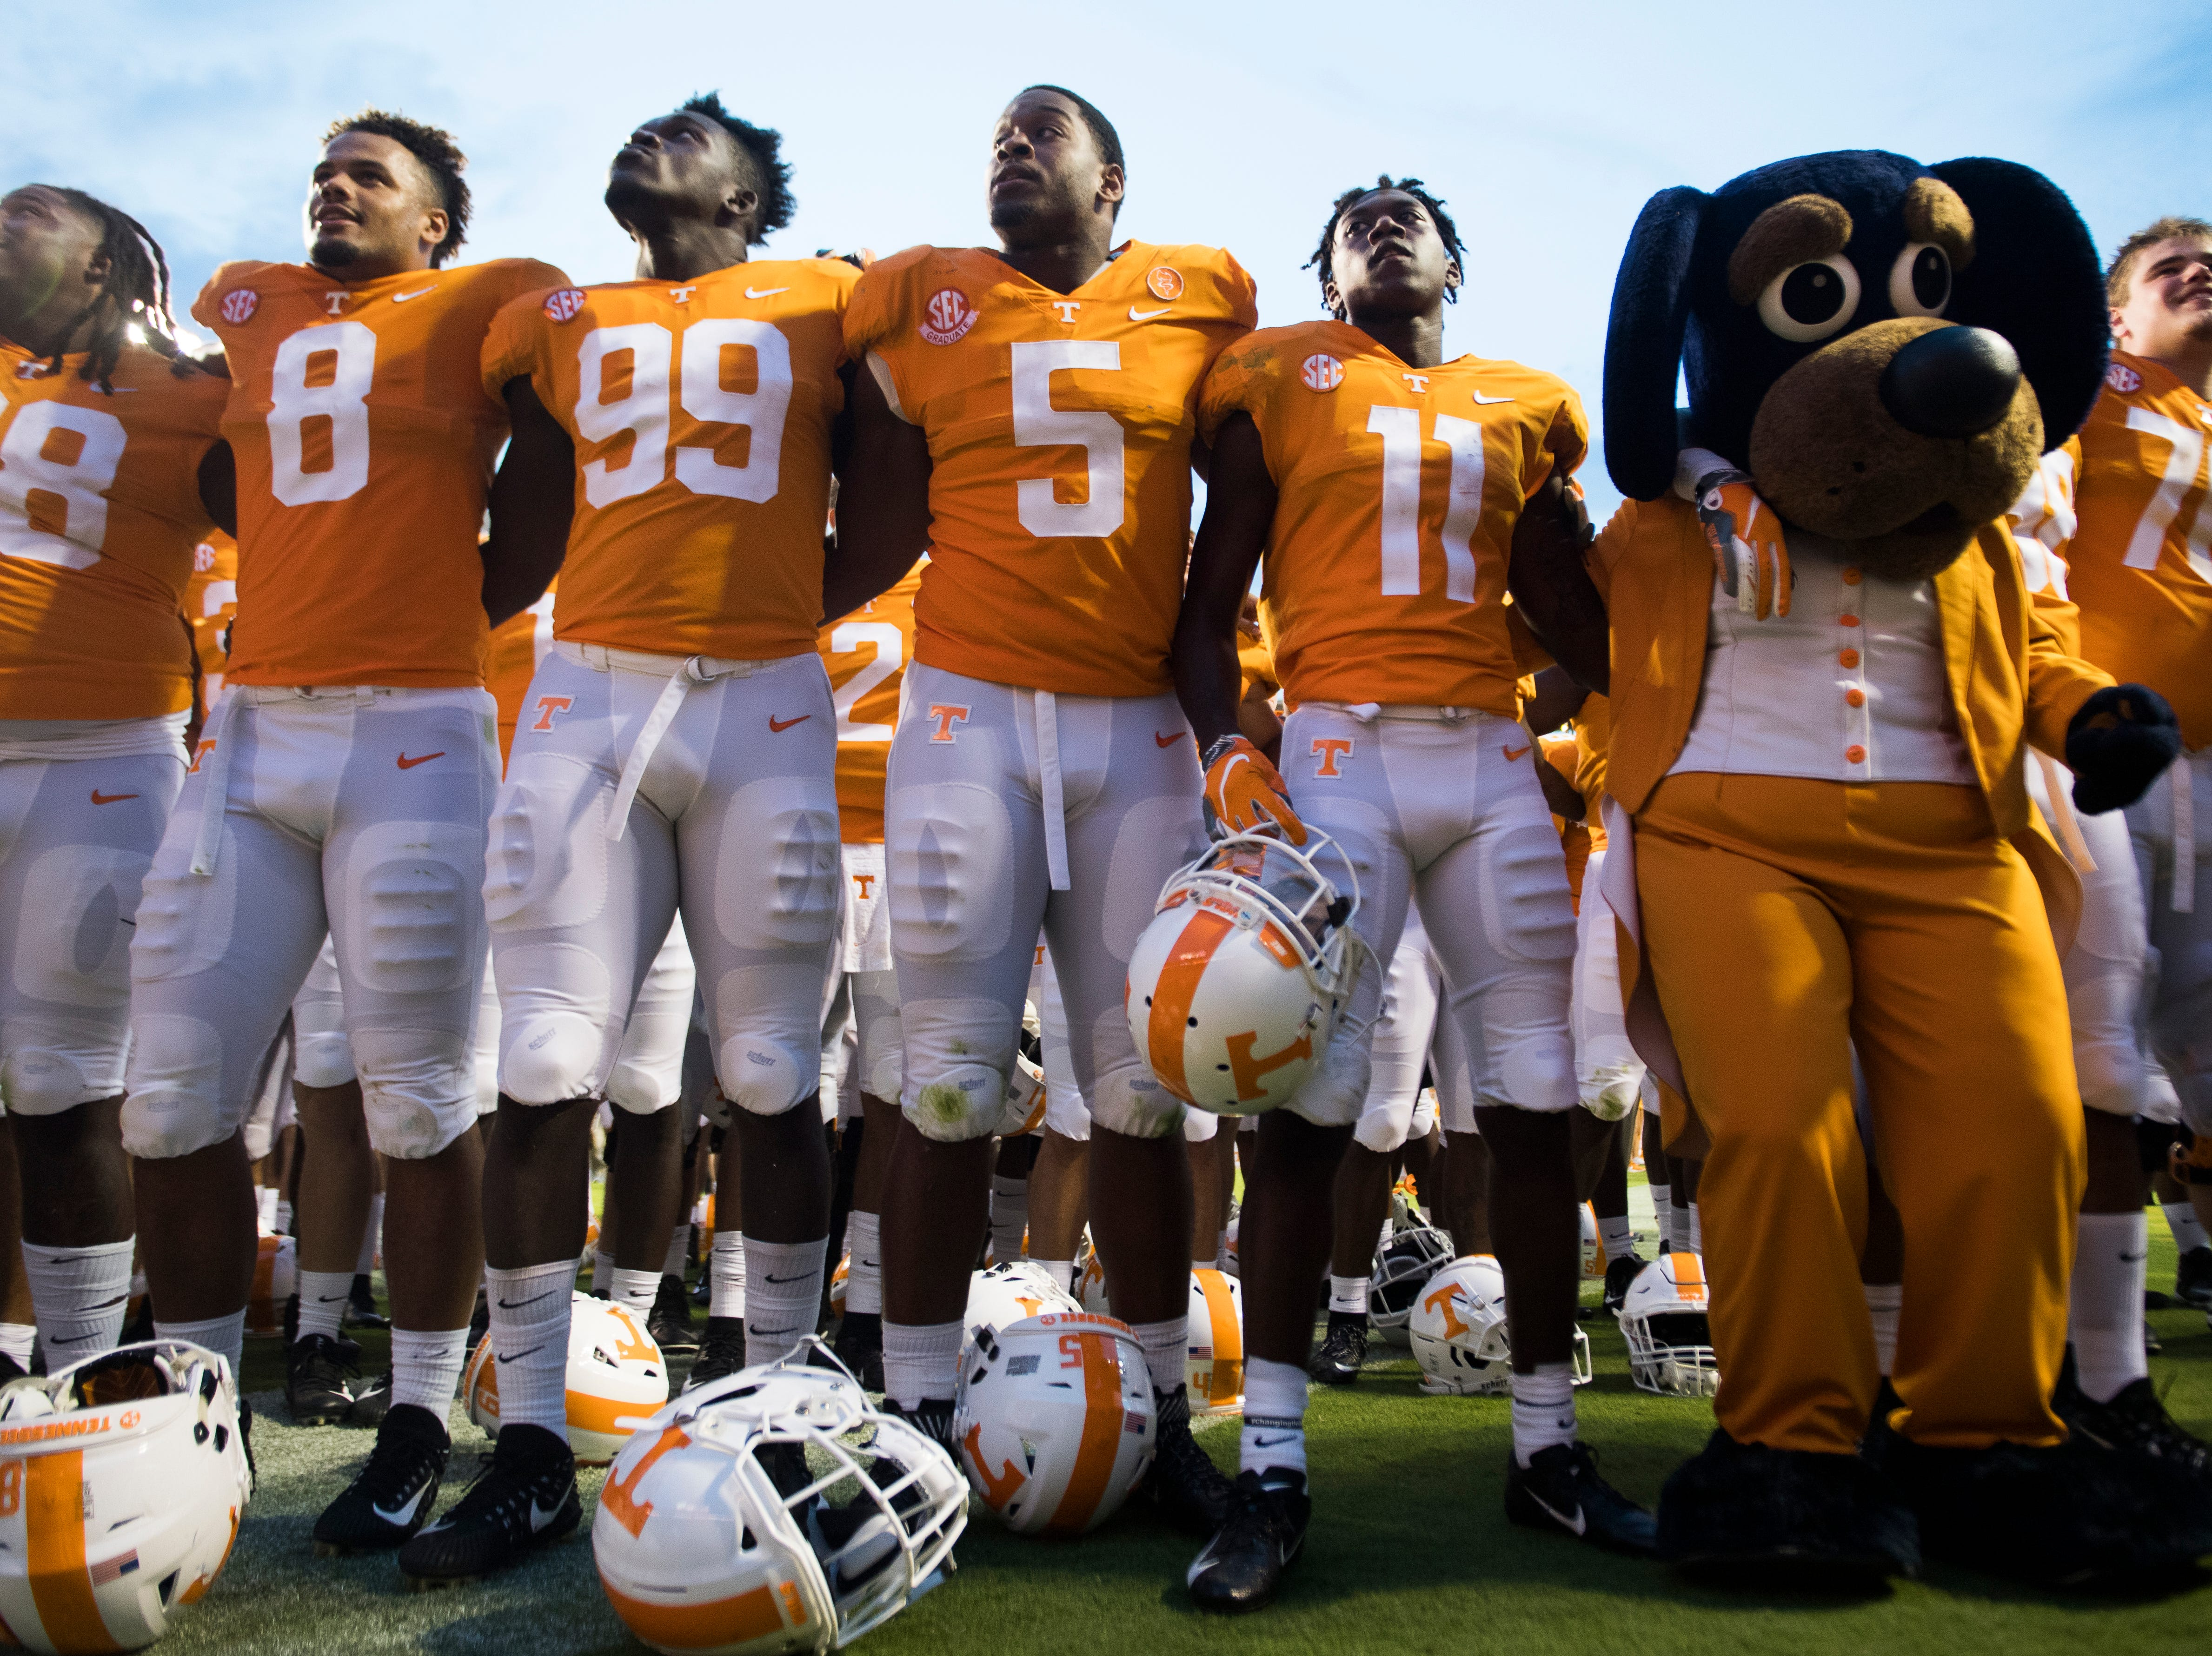 Tennessee celebrates during a game between Tennessee and ETSU at Neyland Stadium in Knoxville, Tennessee on Saturday, September 8, 2018.